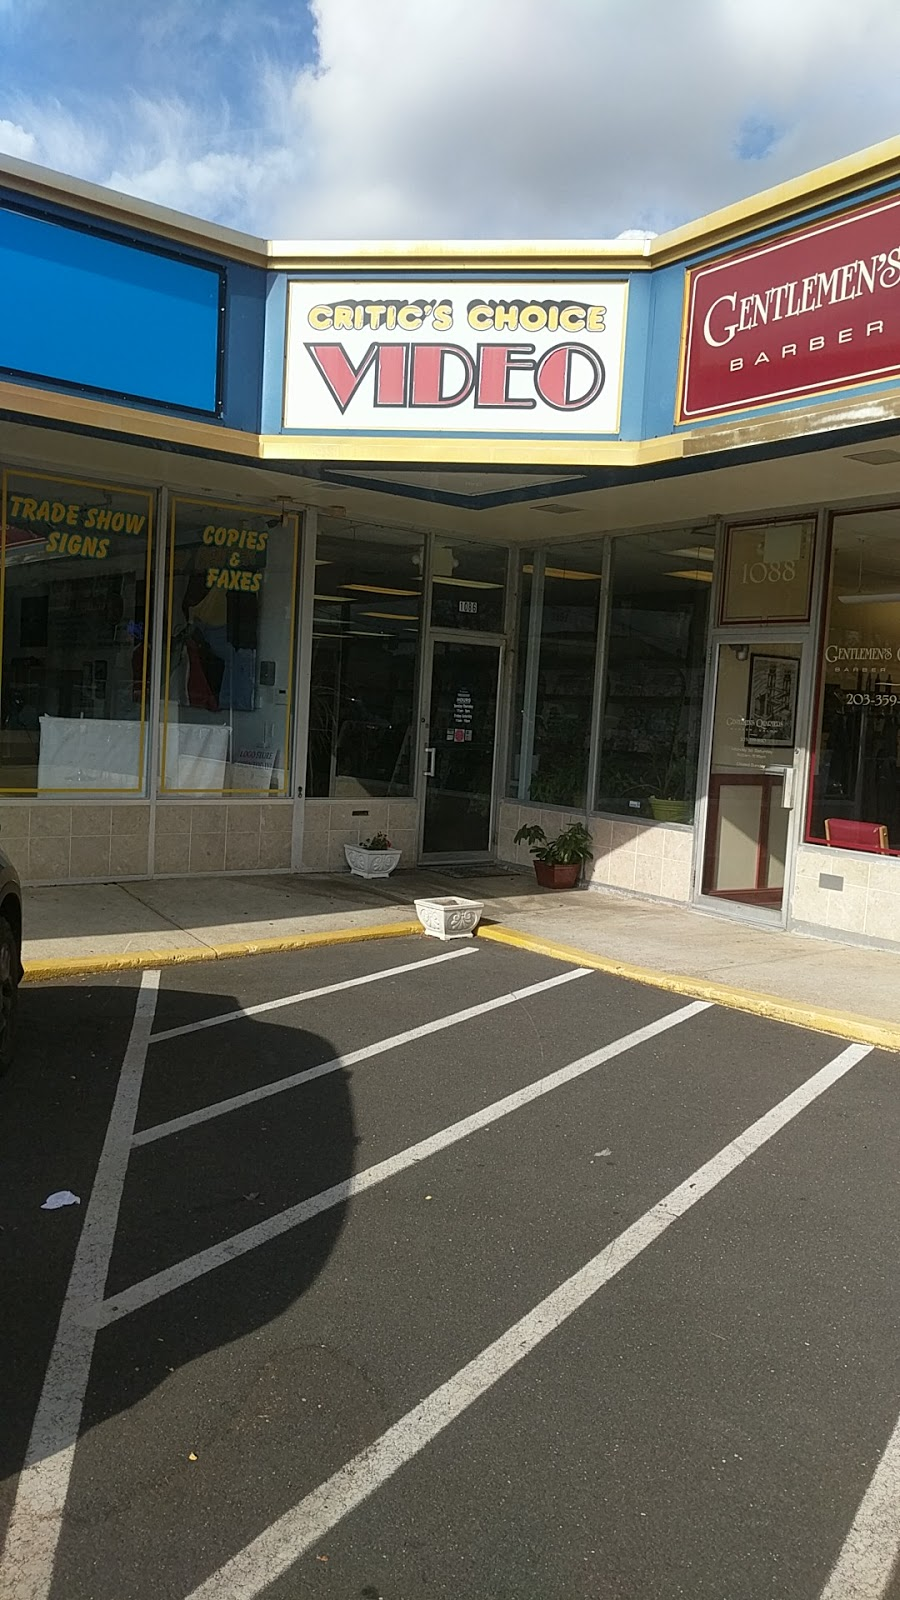 Critics Choice Video - home goods store  | Photo 1 of 2 | Address: Springdale Shopping Center, 1086 Hope St, Stamford, CT 06907, USA | Phone: (203) 329-3100